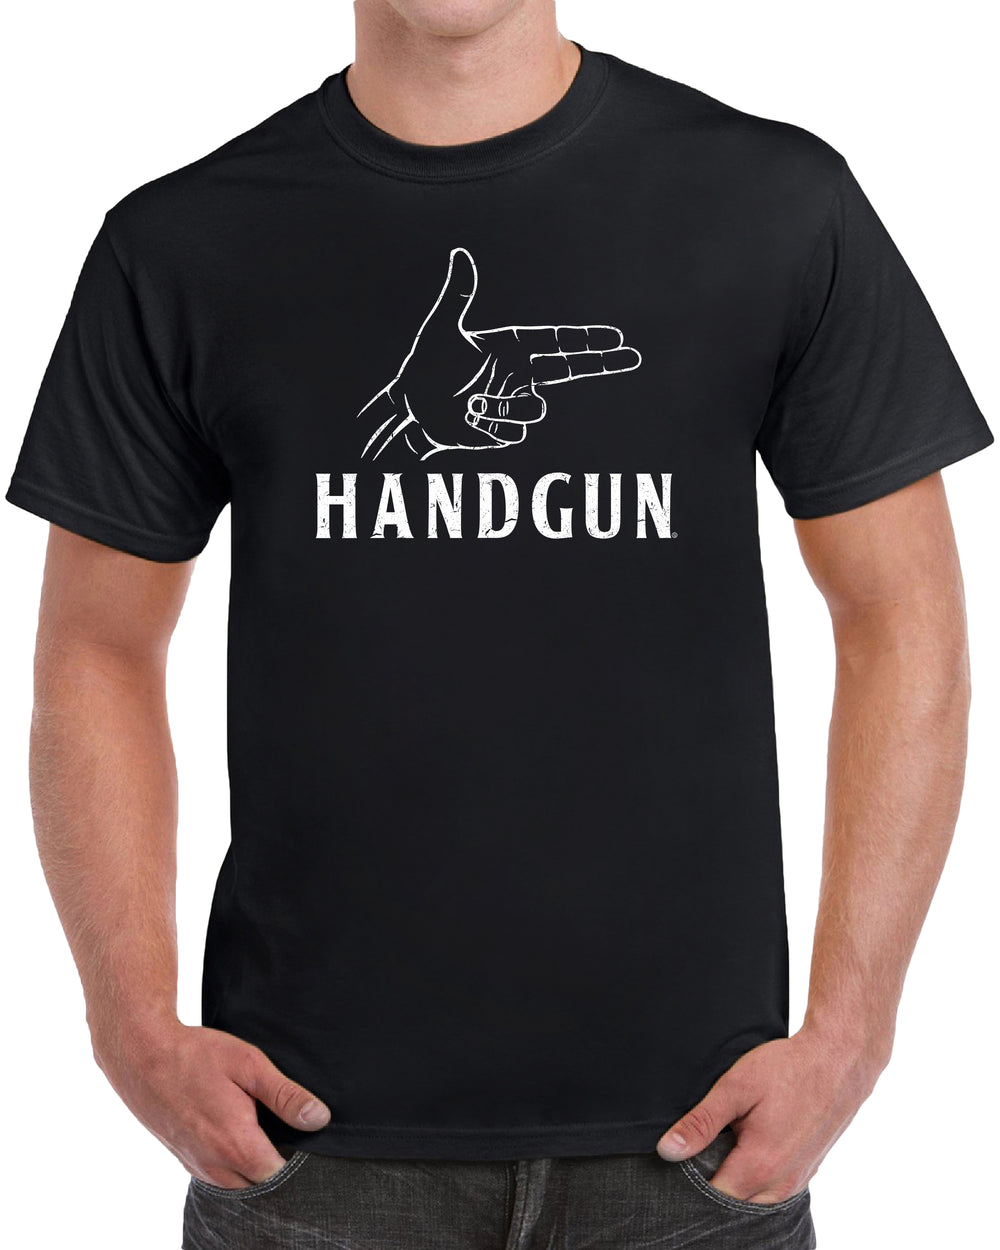 Hand Gun - Distressed Print